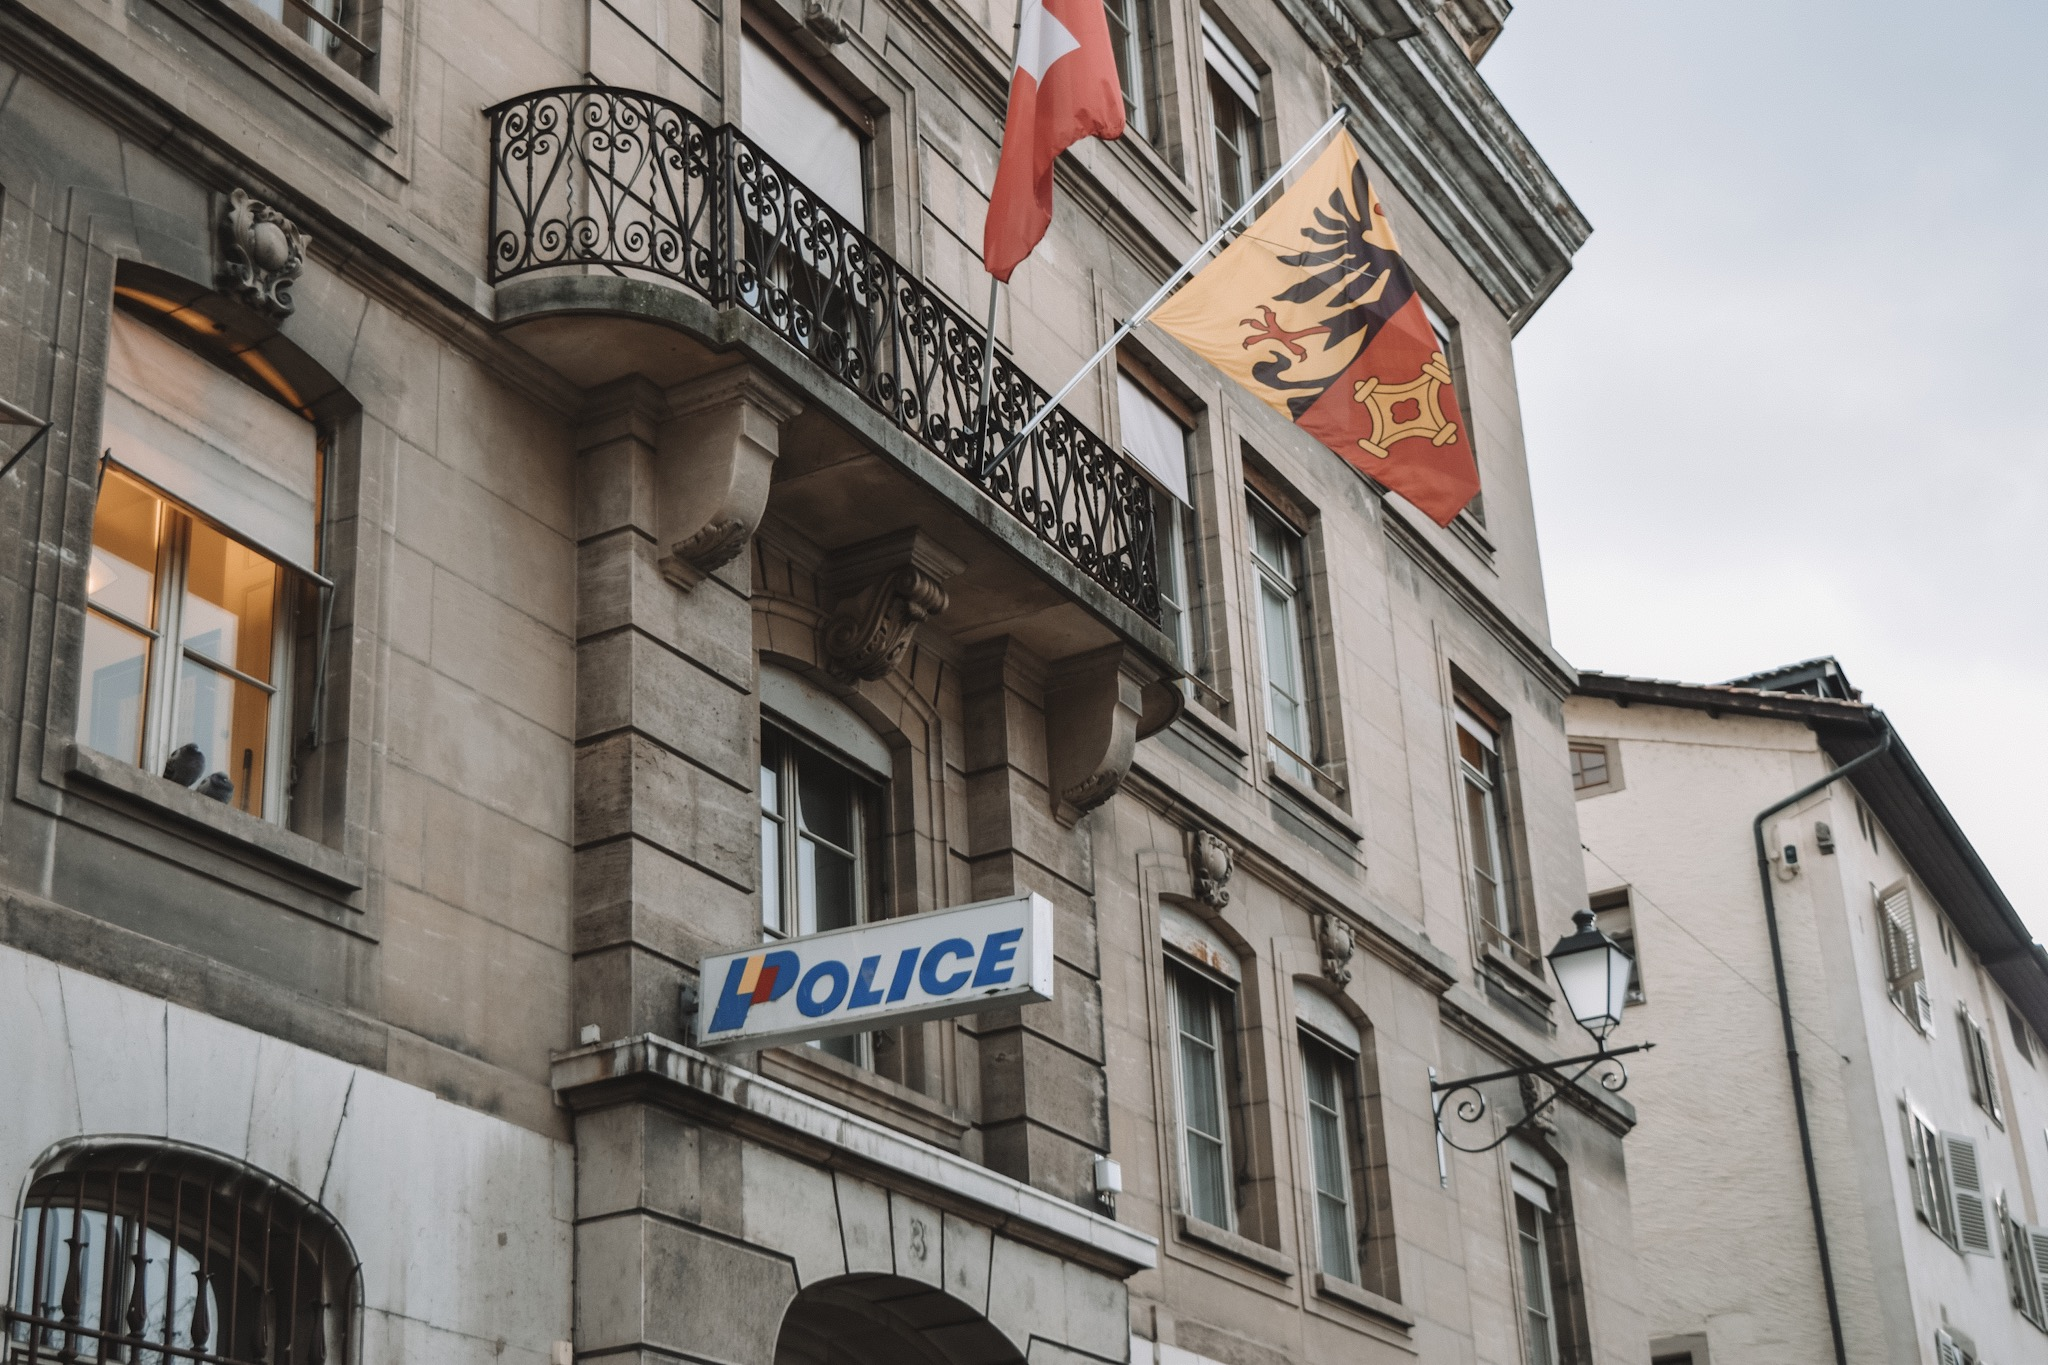 The logo for the Swiss police reminds me so much of the Playmobil I had as a kid.